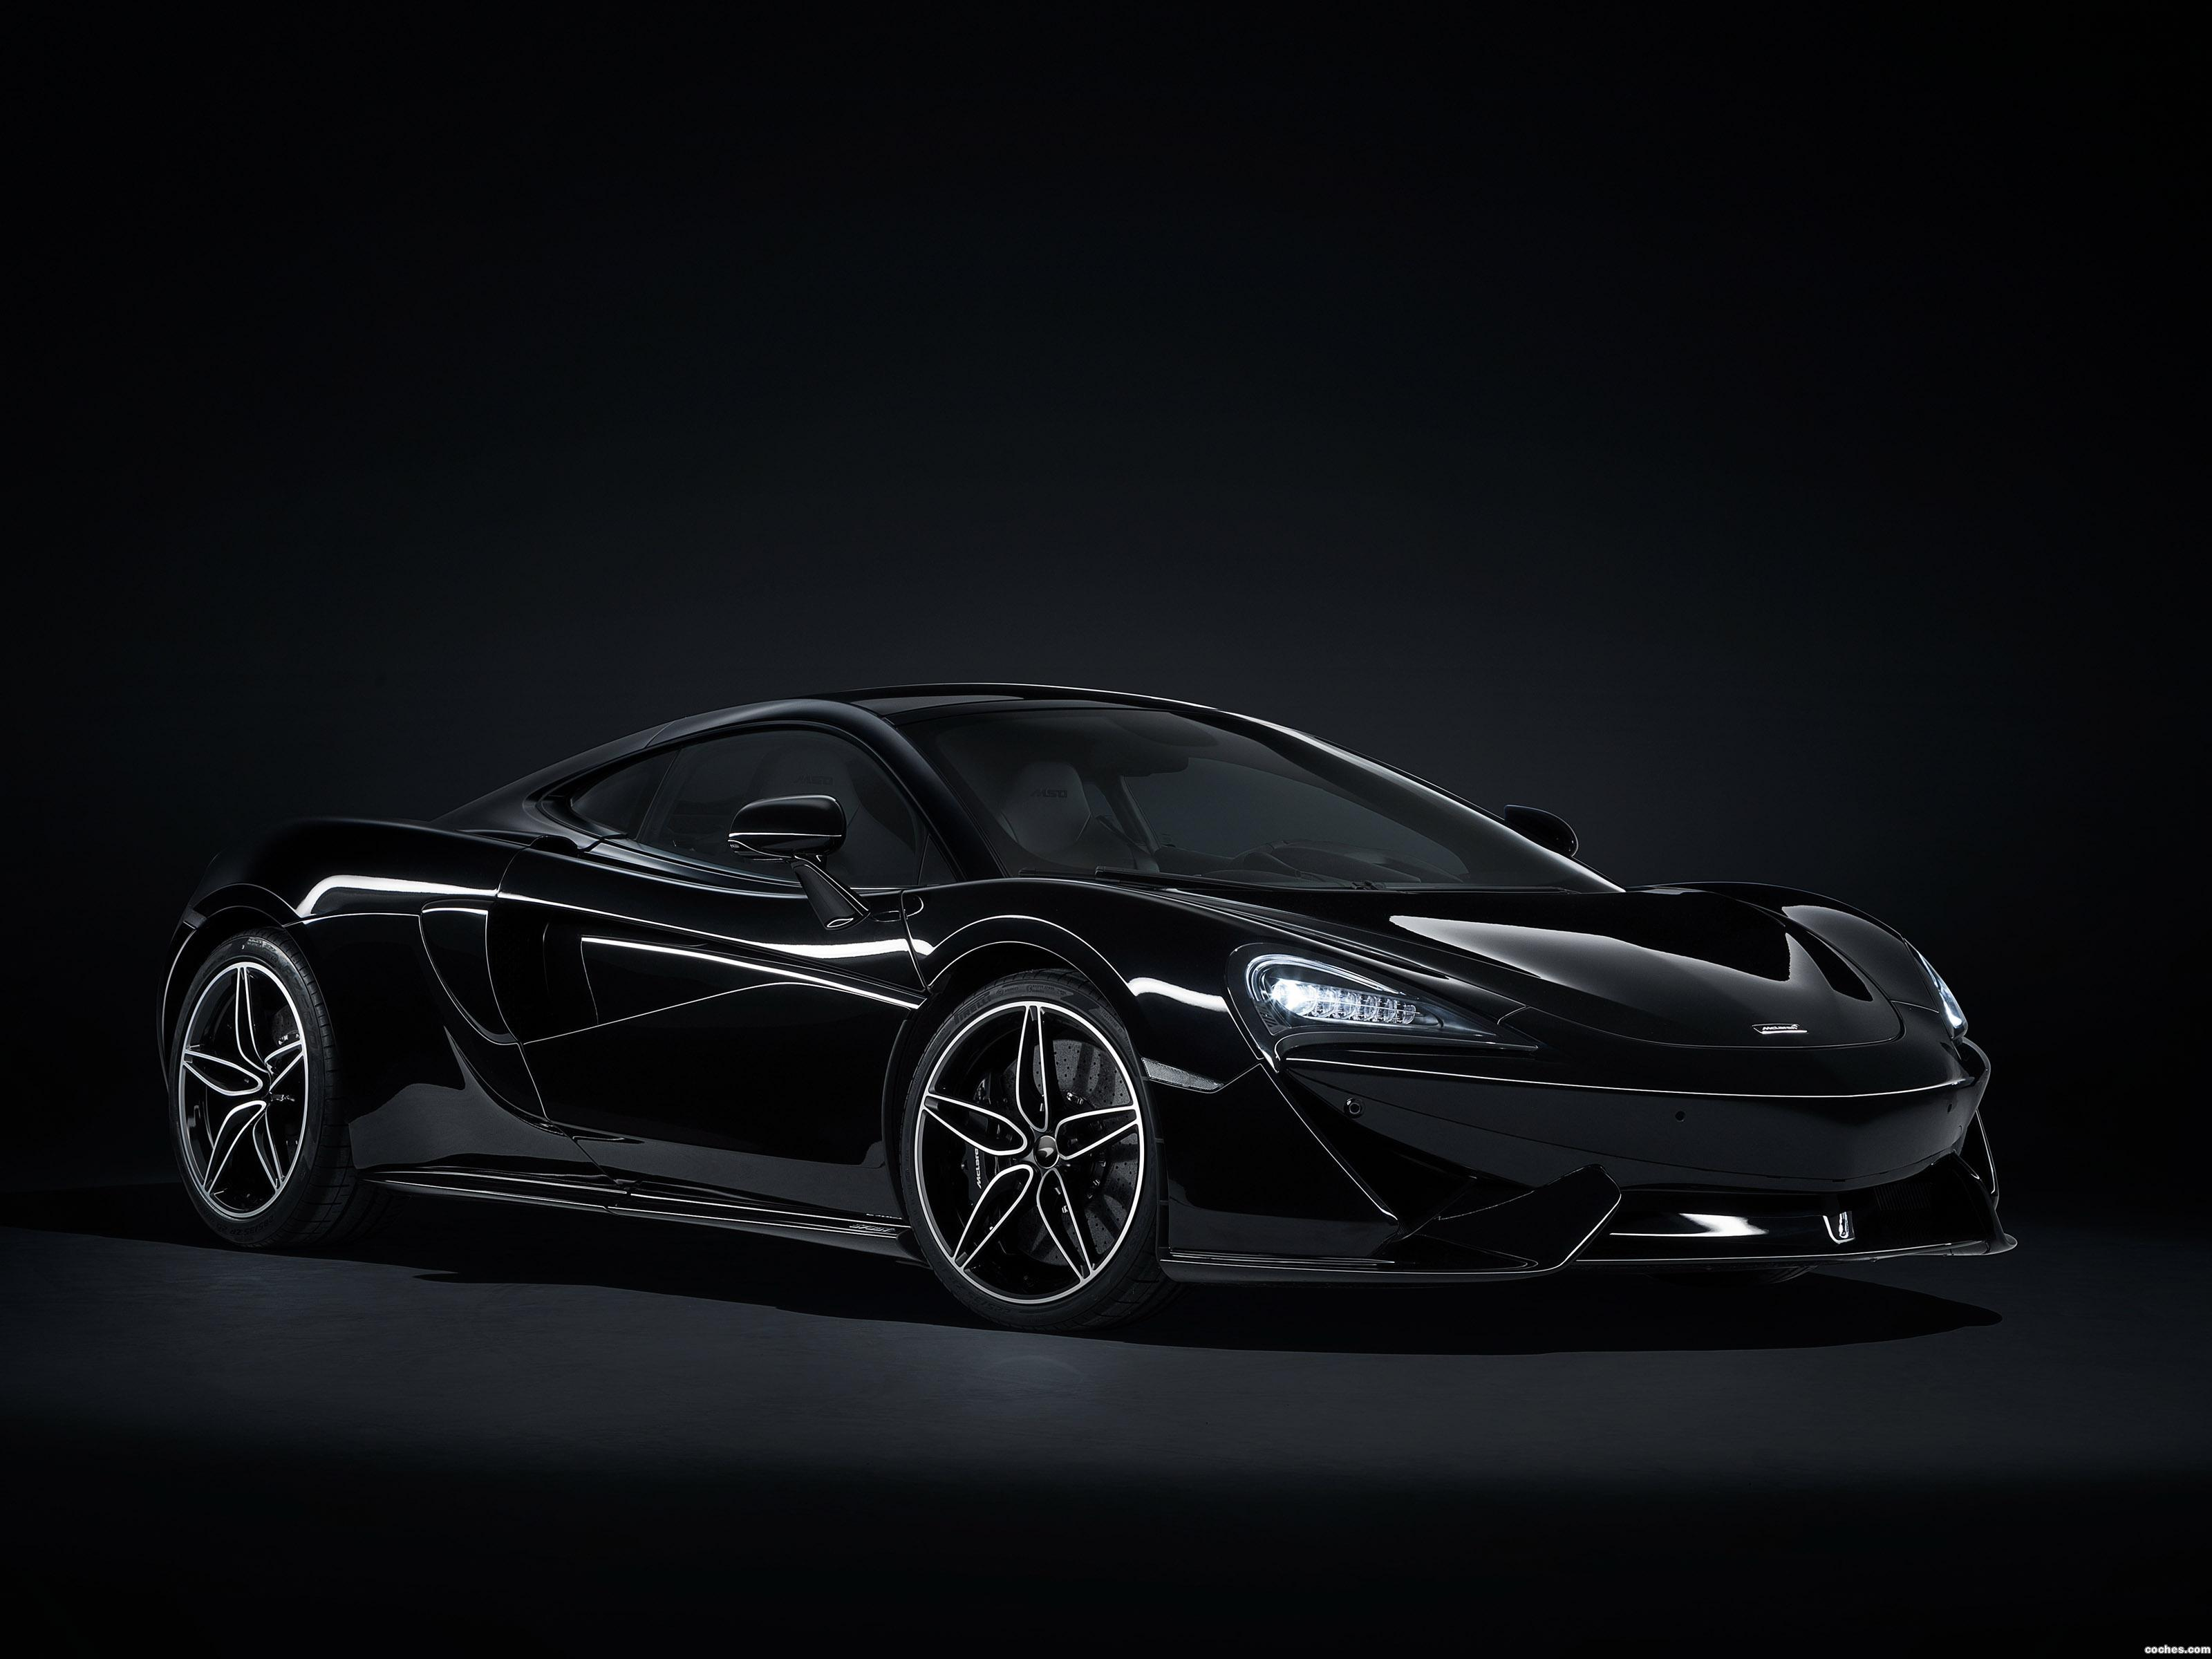 mclaren_570gt-mso-black-collection-2018_r9.jpg